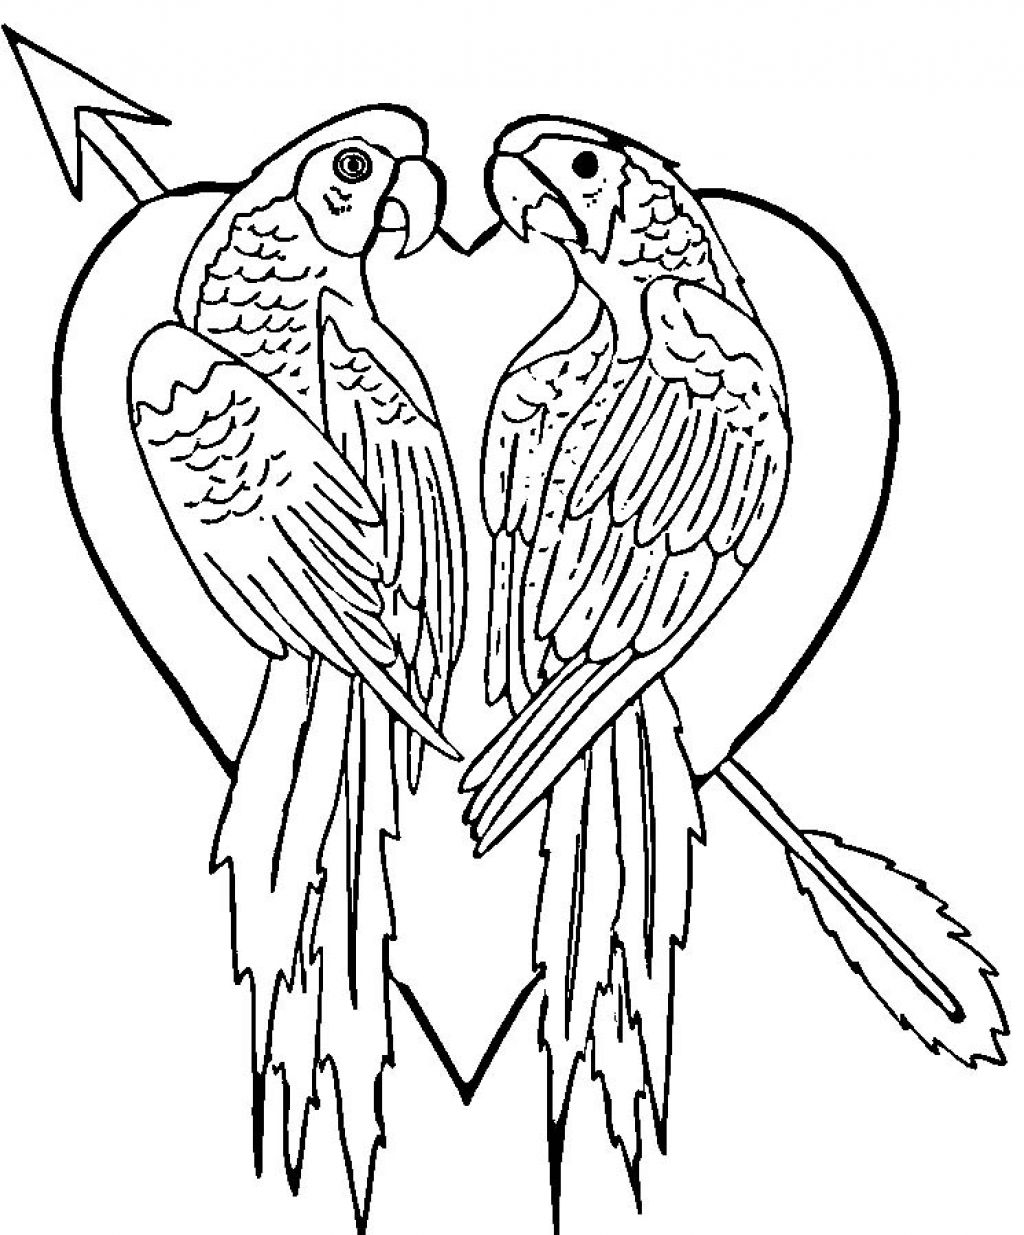 1024x1235 Innovative Coloring Pages Of Parrots Best Design Ideas